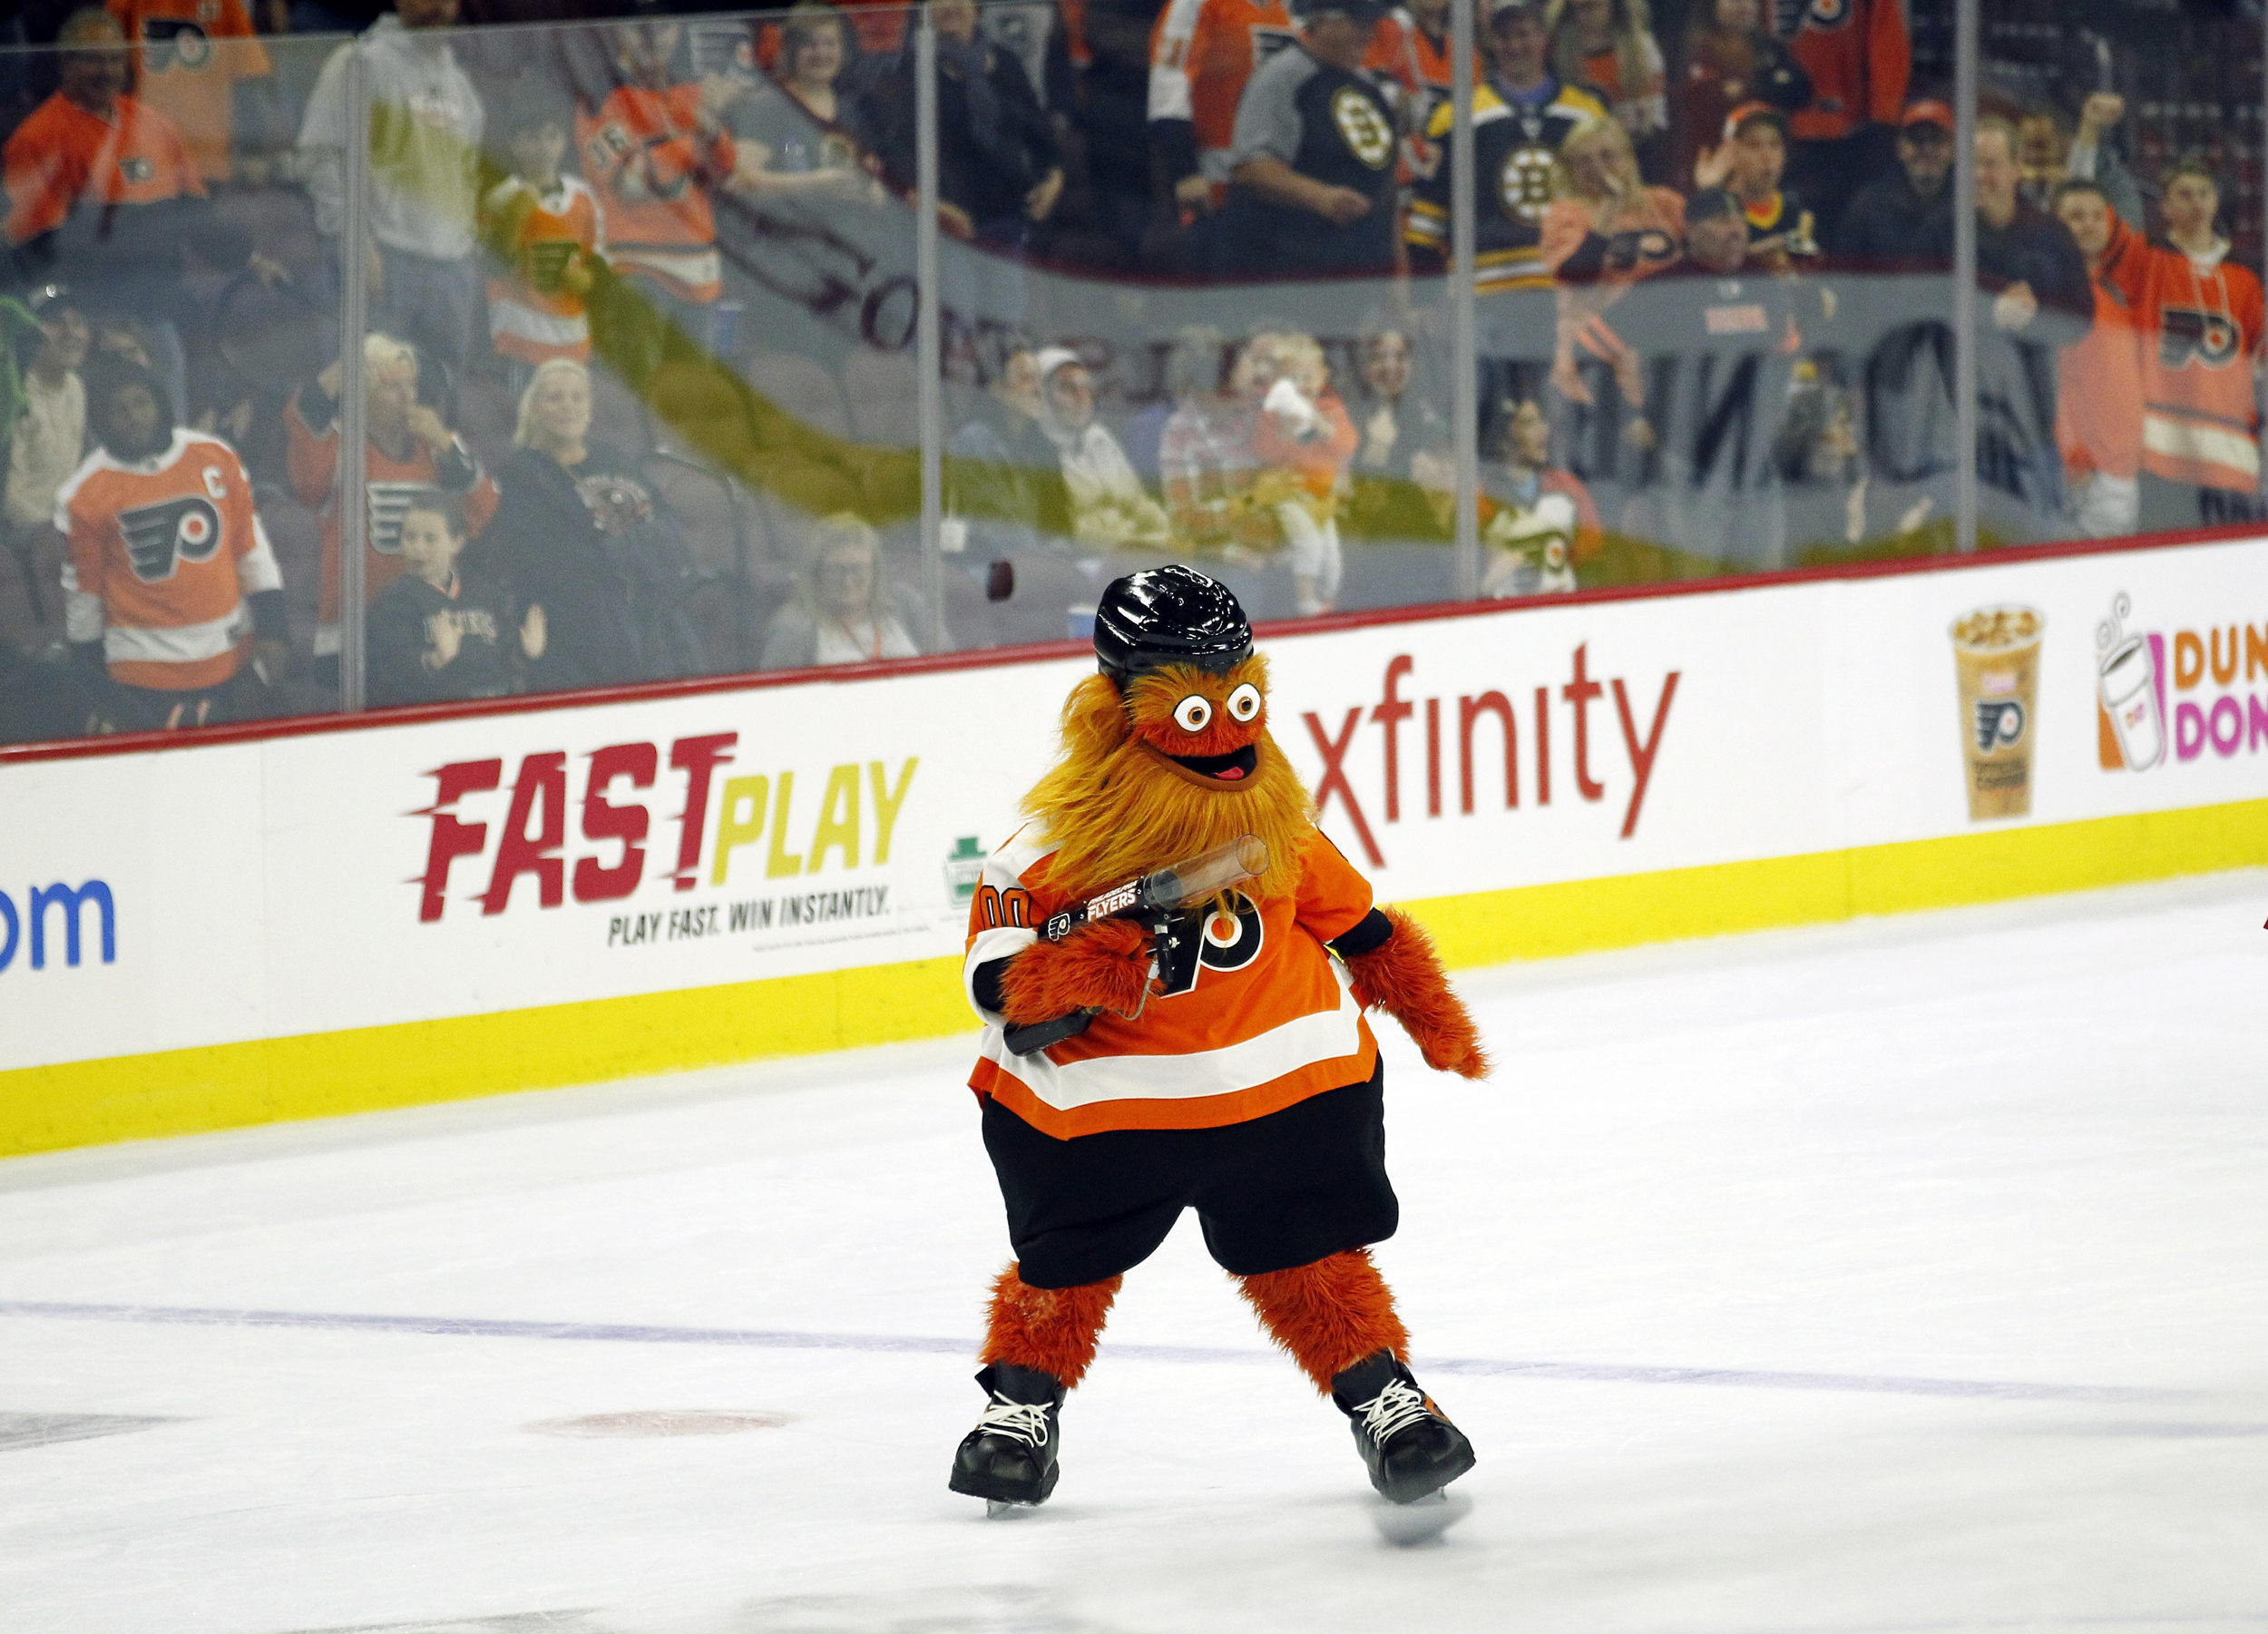 Gritty Shares Inspirational Message Amid Coronavirus Social Distancing